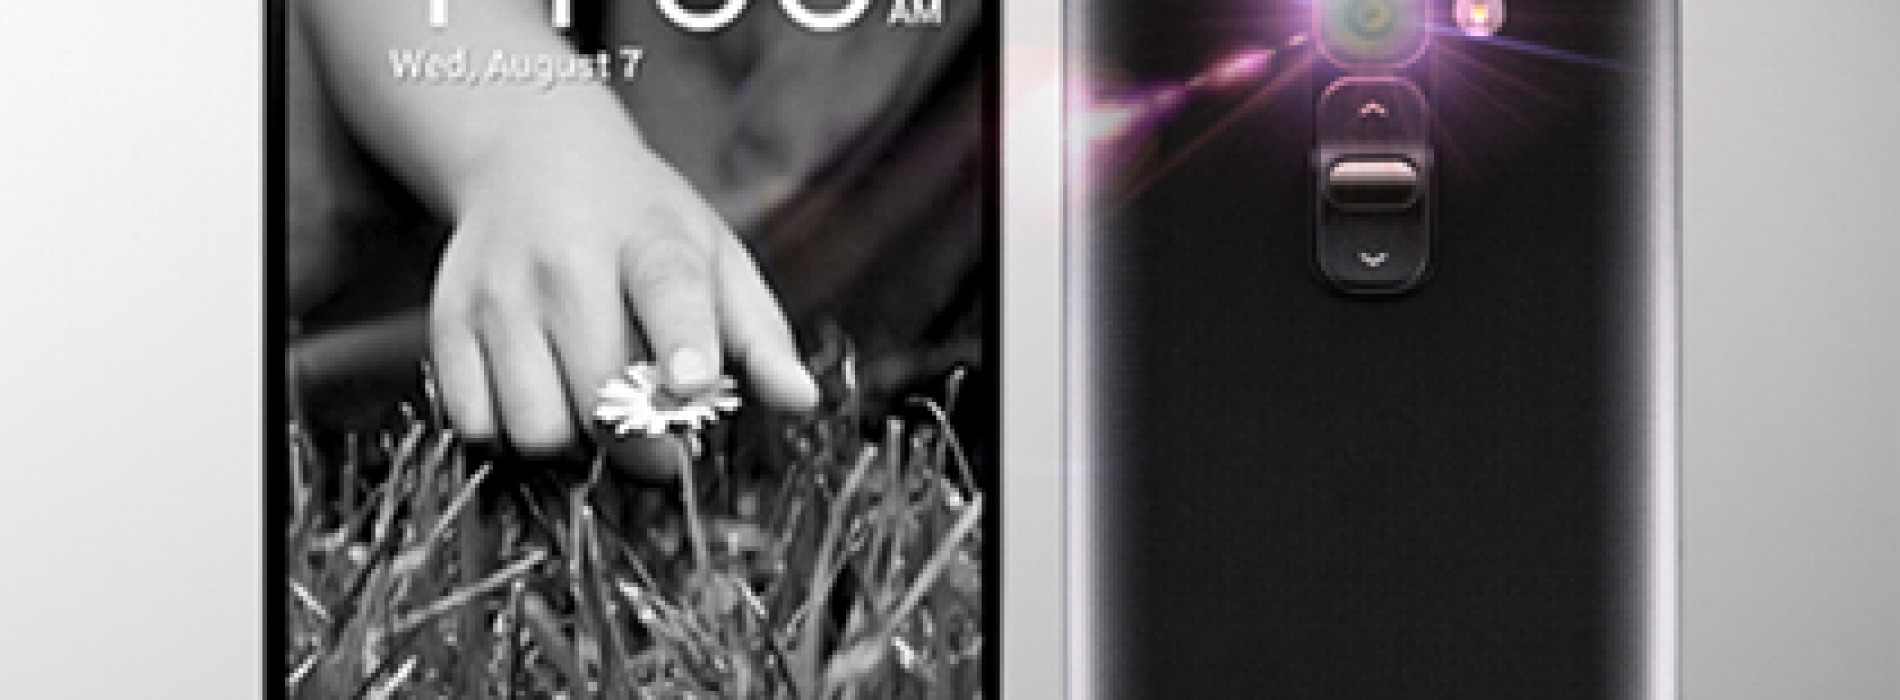 LG teases G2 Mini for Mobile World Congress 2014